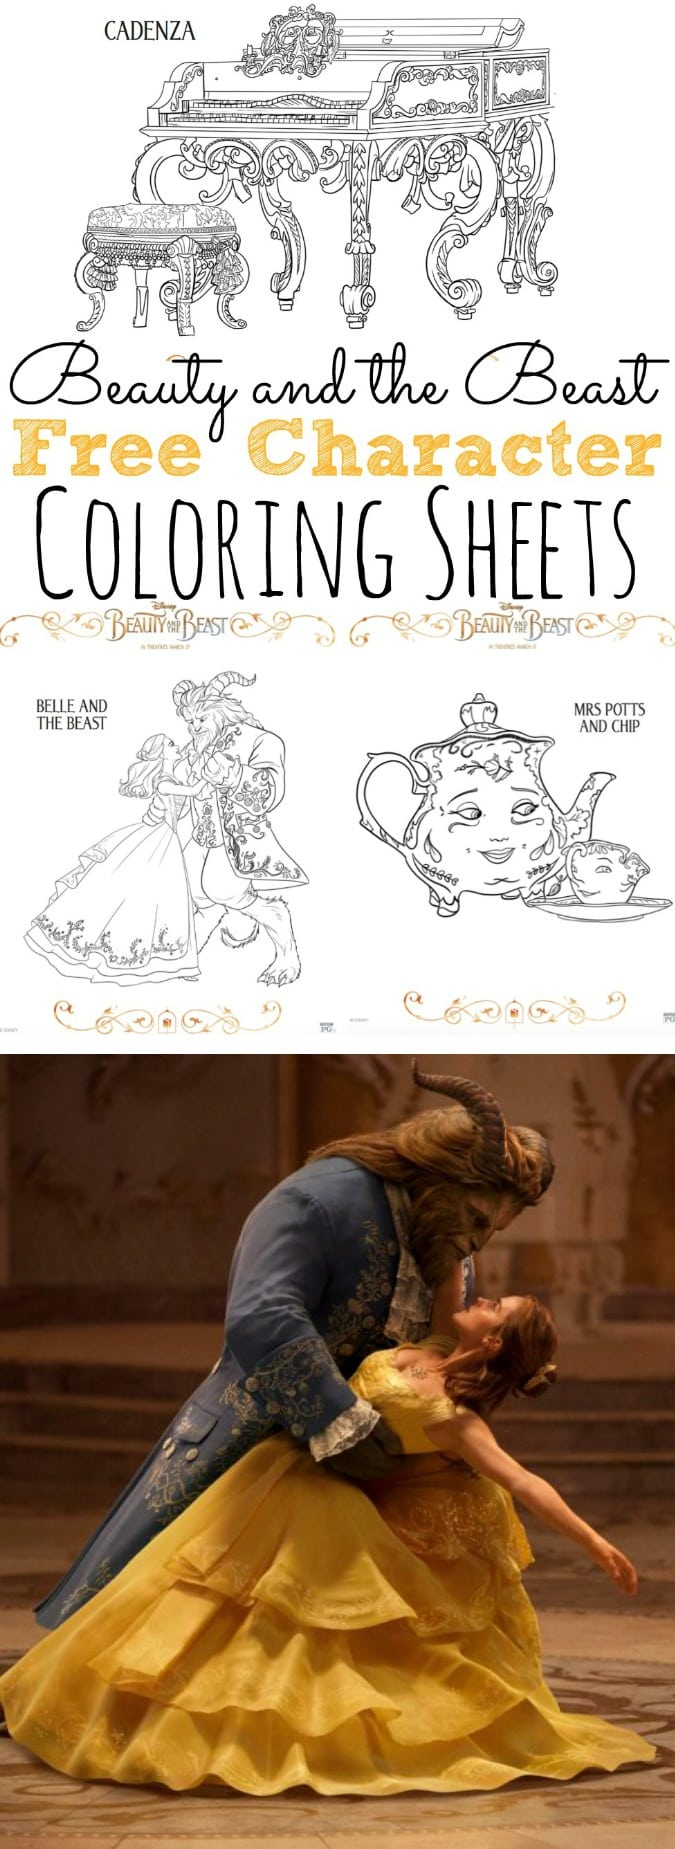 Free Beauty and the Beasst Coloring Pages and Activity Sheets